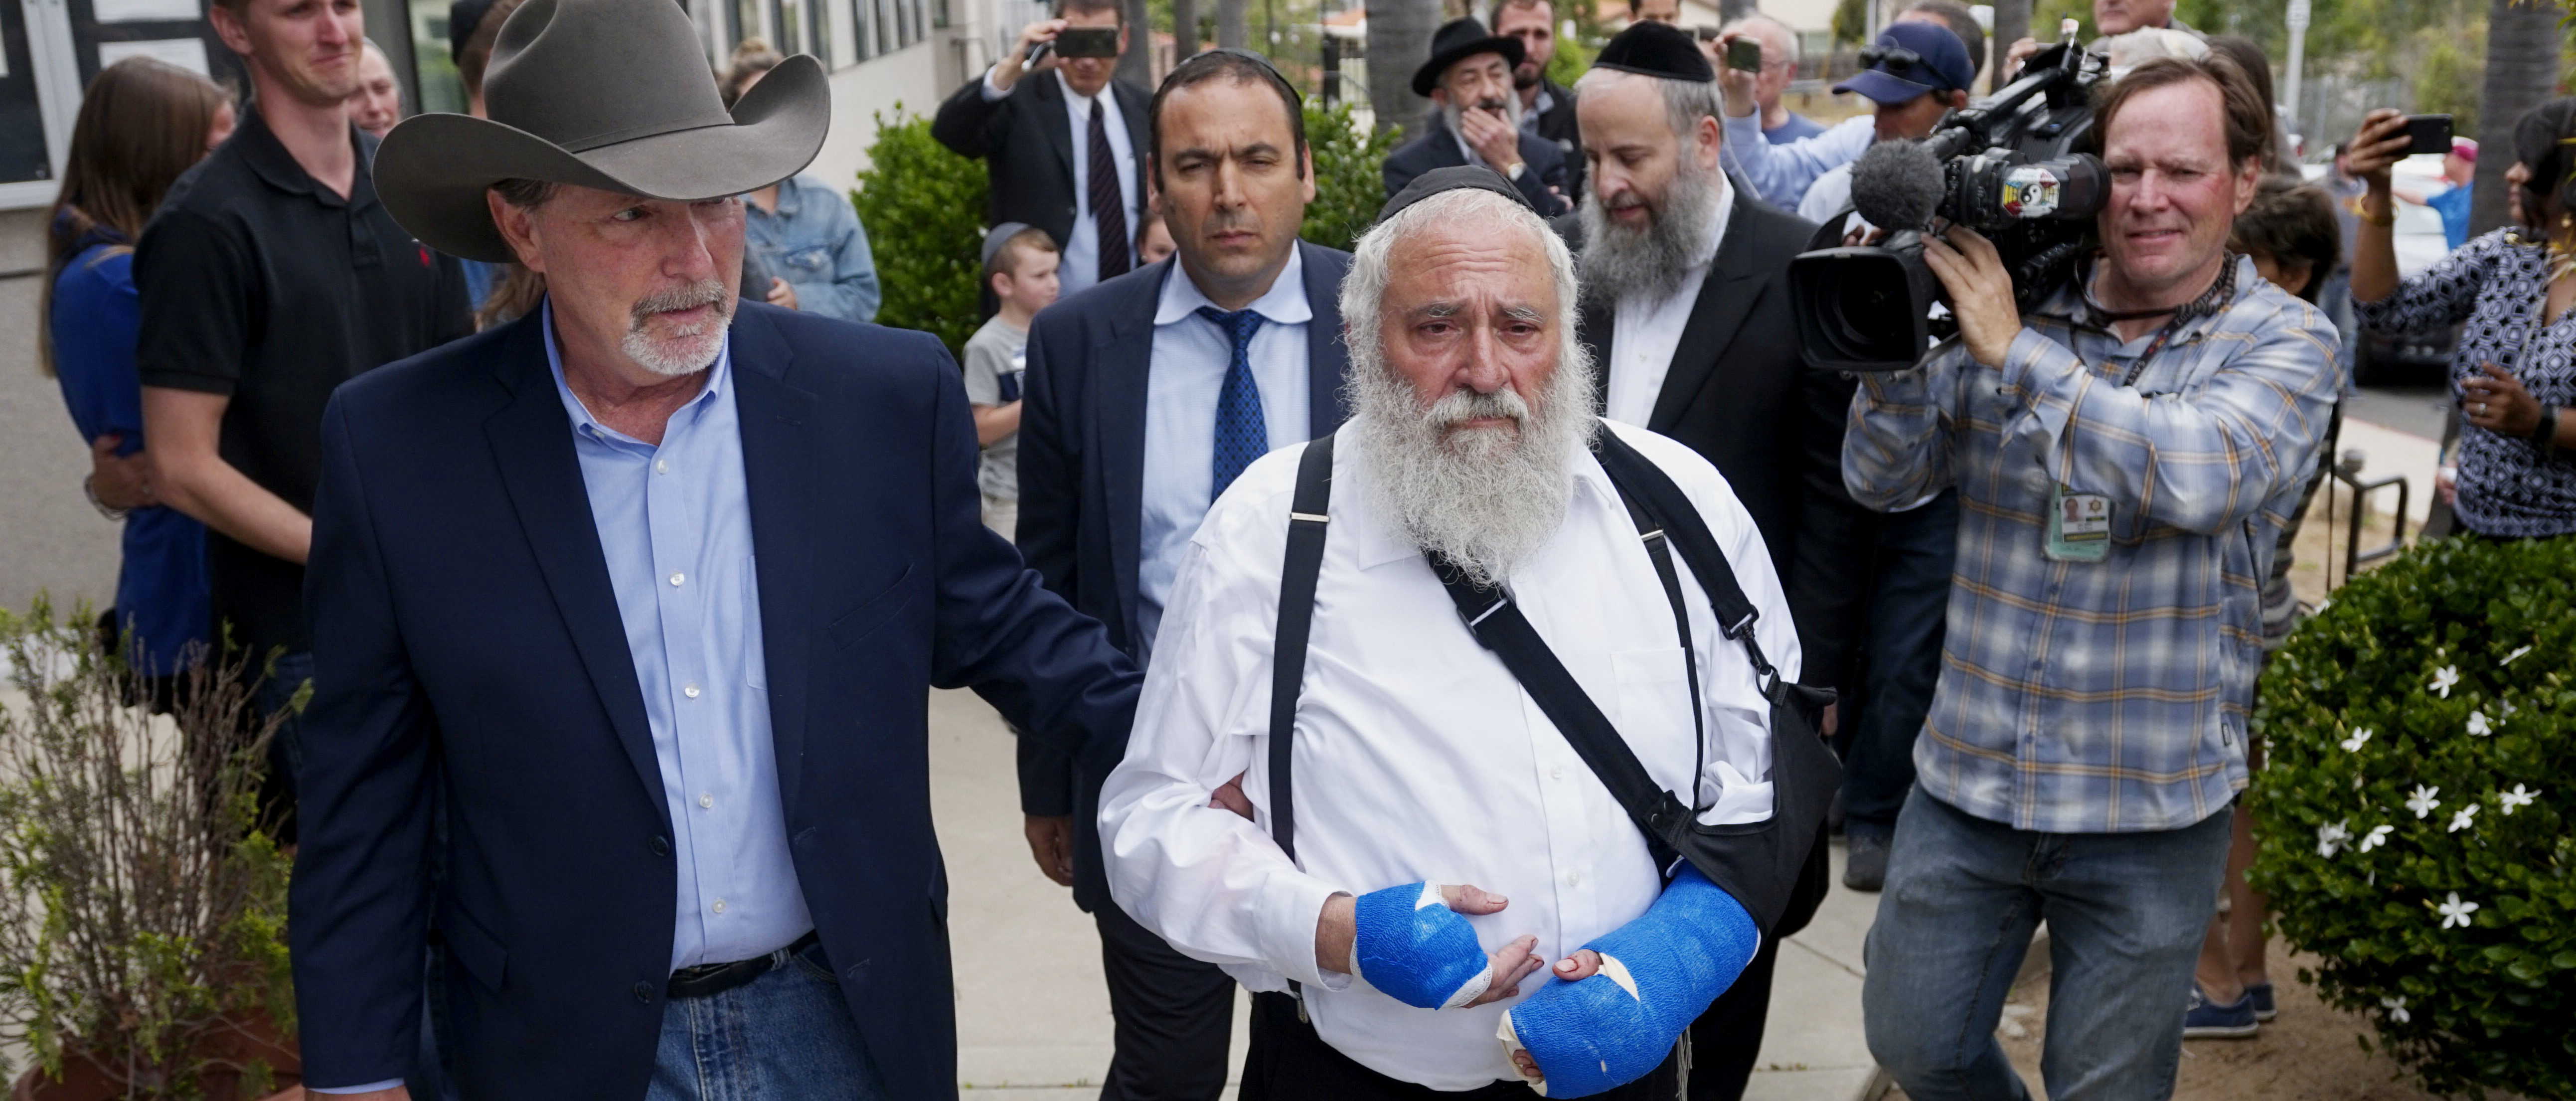 "Executive Director Rabbi Yisroel Goldstein, who was shot in the hands, walks towards a press conference with Poway Mayor Steve Vaus outside of the Chabad of Poway Synagogue on April 28, 2019 in Poway, California. - A rabbi who carried on preaching despite being wounded in the latest deadly shooting at a US synagogue said on April 28 that Jews would not be intimidated by the ""senseless hate"" of anti-semitism. (Photo by SANDY HUFFAKER / AFP) (Photo credit should read SANDY HUFFAKER/AFP/Getty Images)"